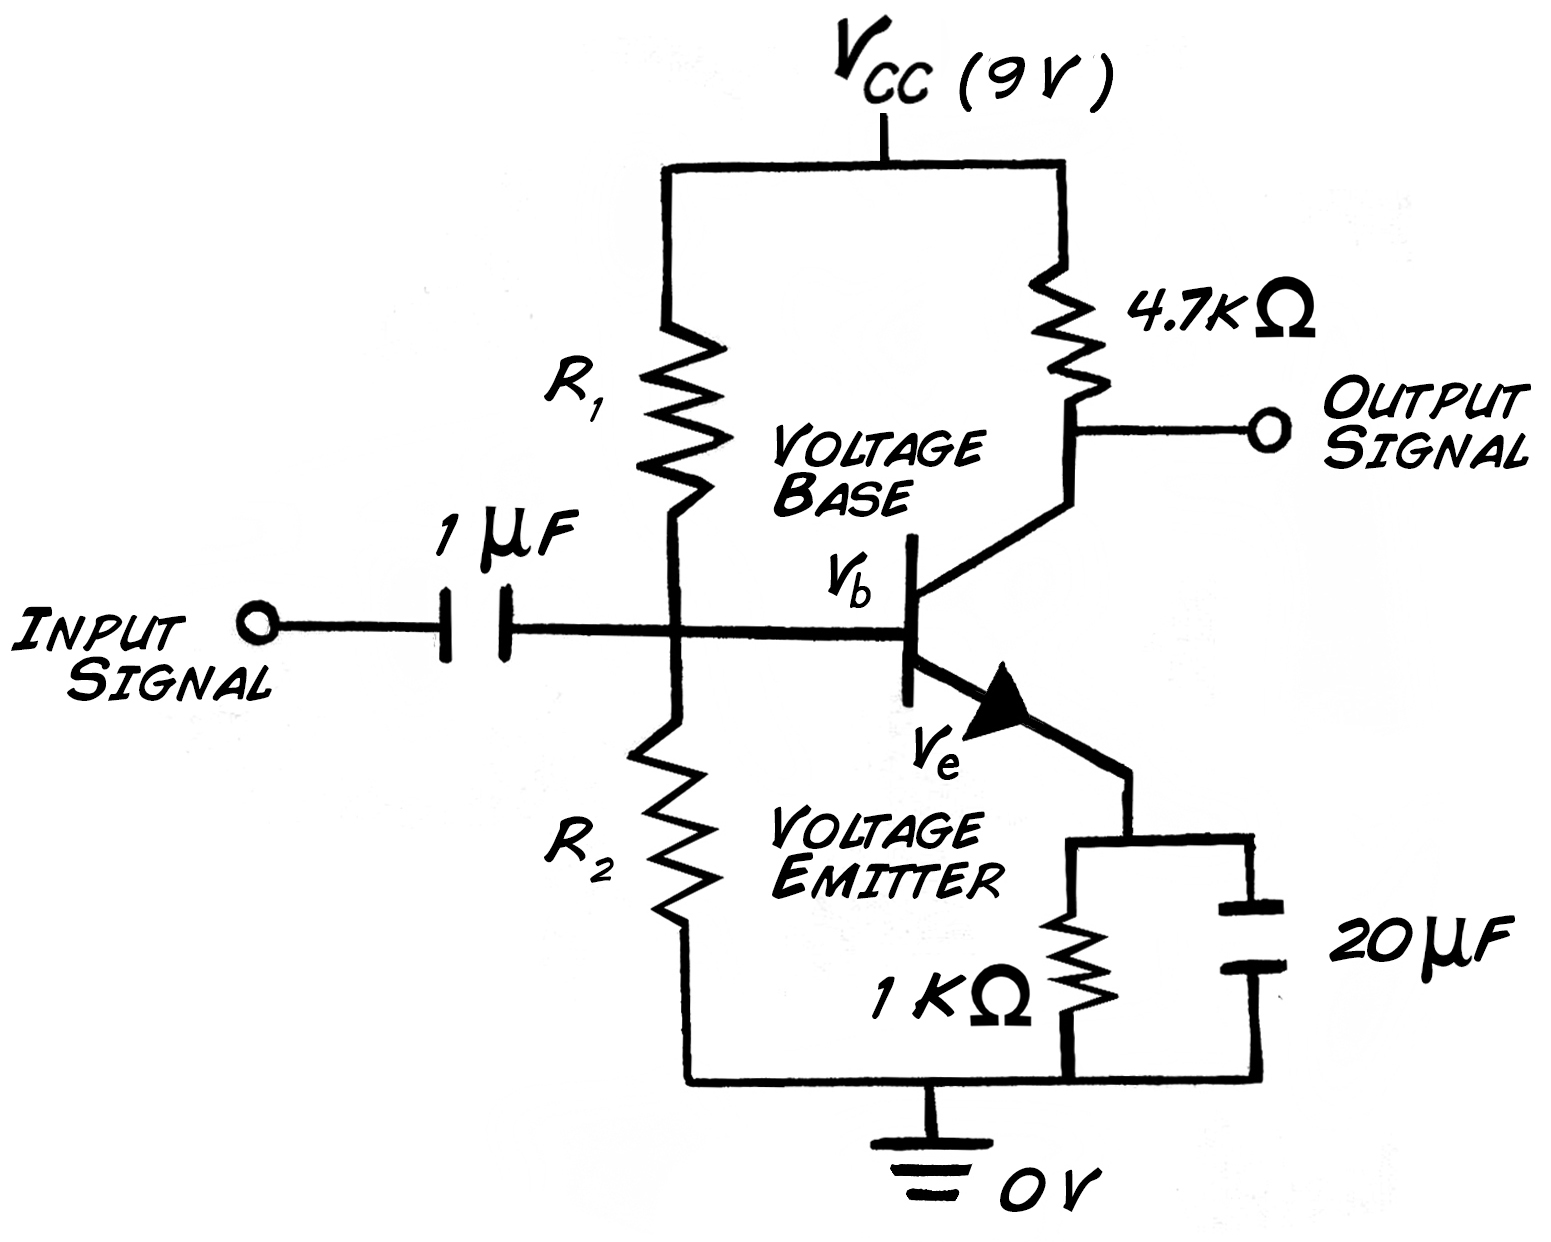 Diode Logic Tutorial Circuits Combination Tutorials Experiment Transistor Circuit Design Setting The Bias Voltages